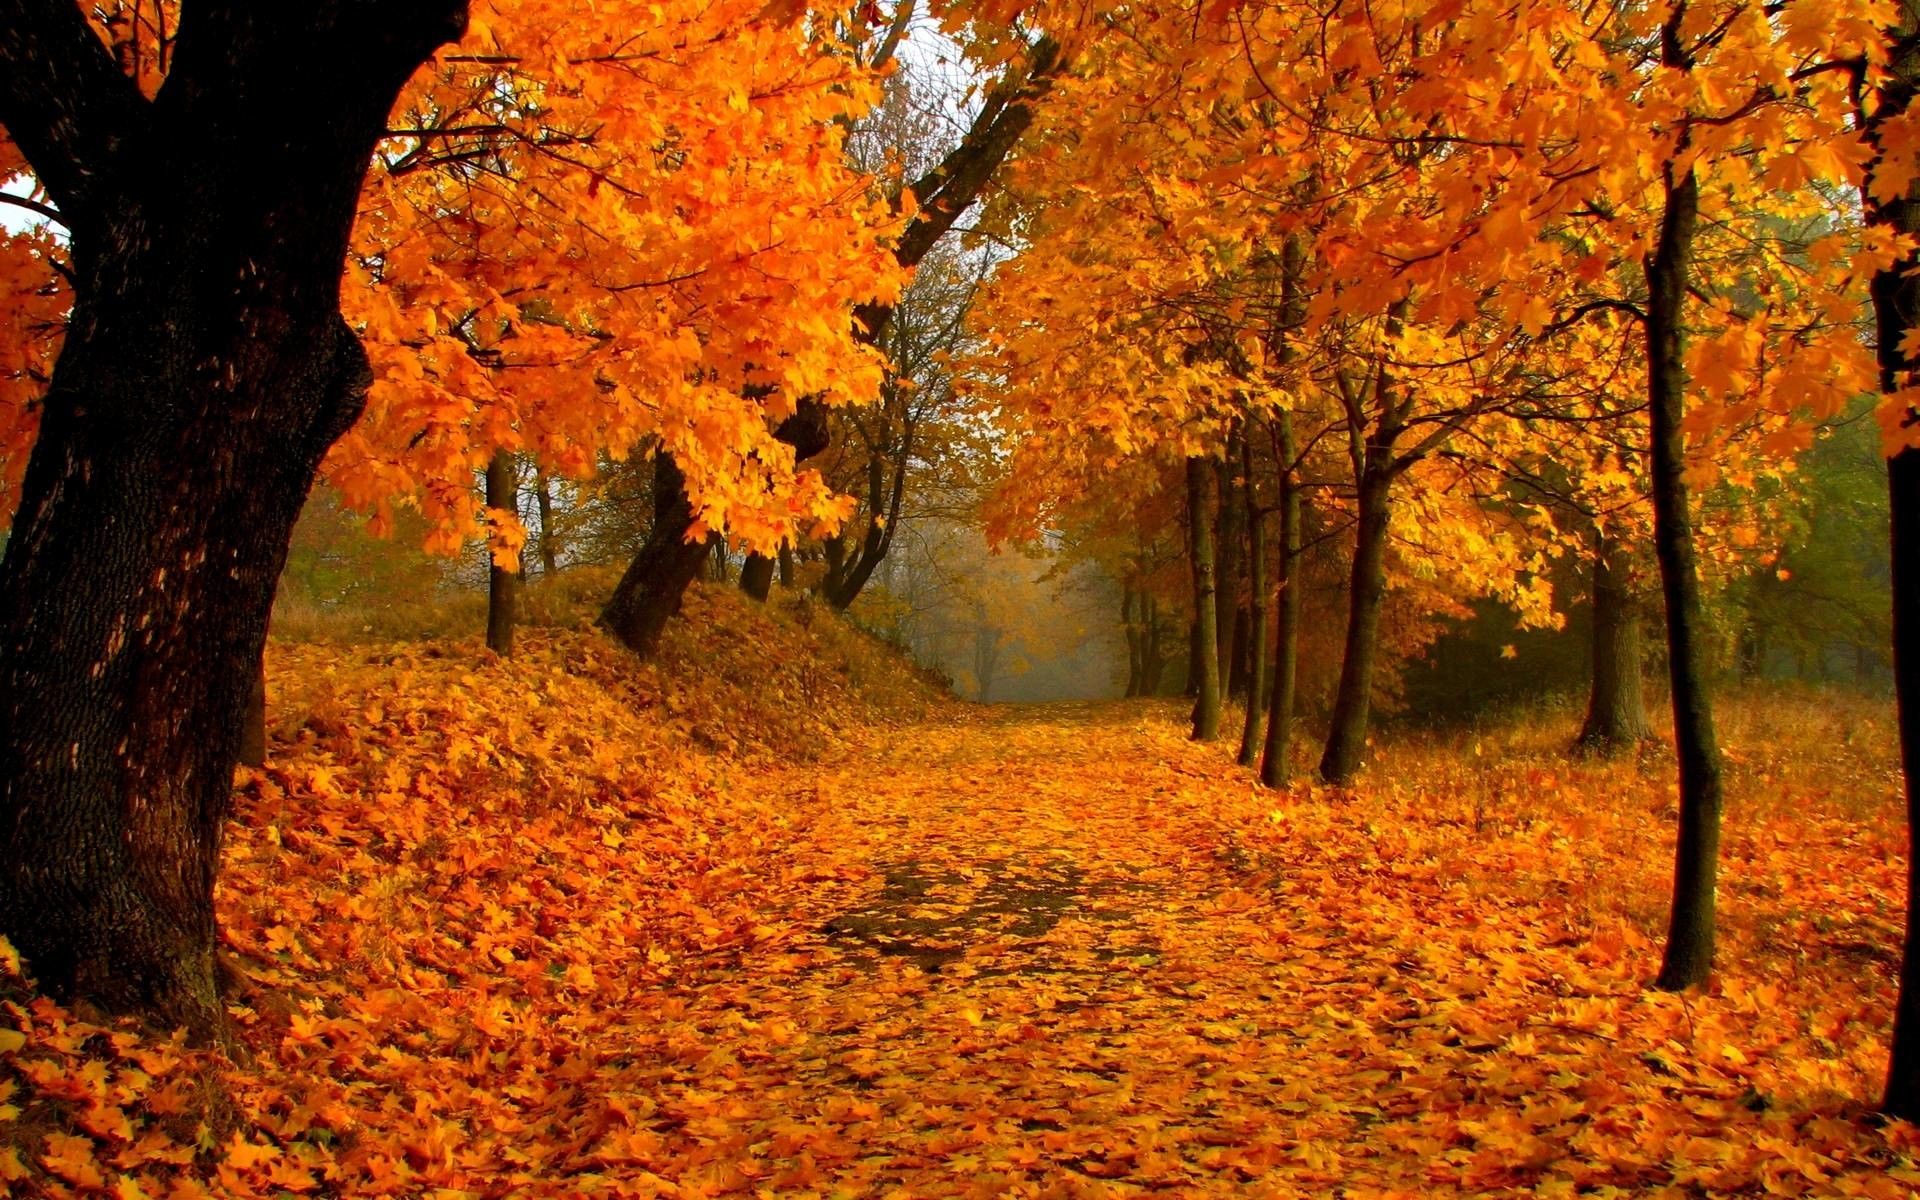 Autumn Scenery Wallpapers Top Free Autumn Scenery Backgrounds Wallpaperaccess